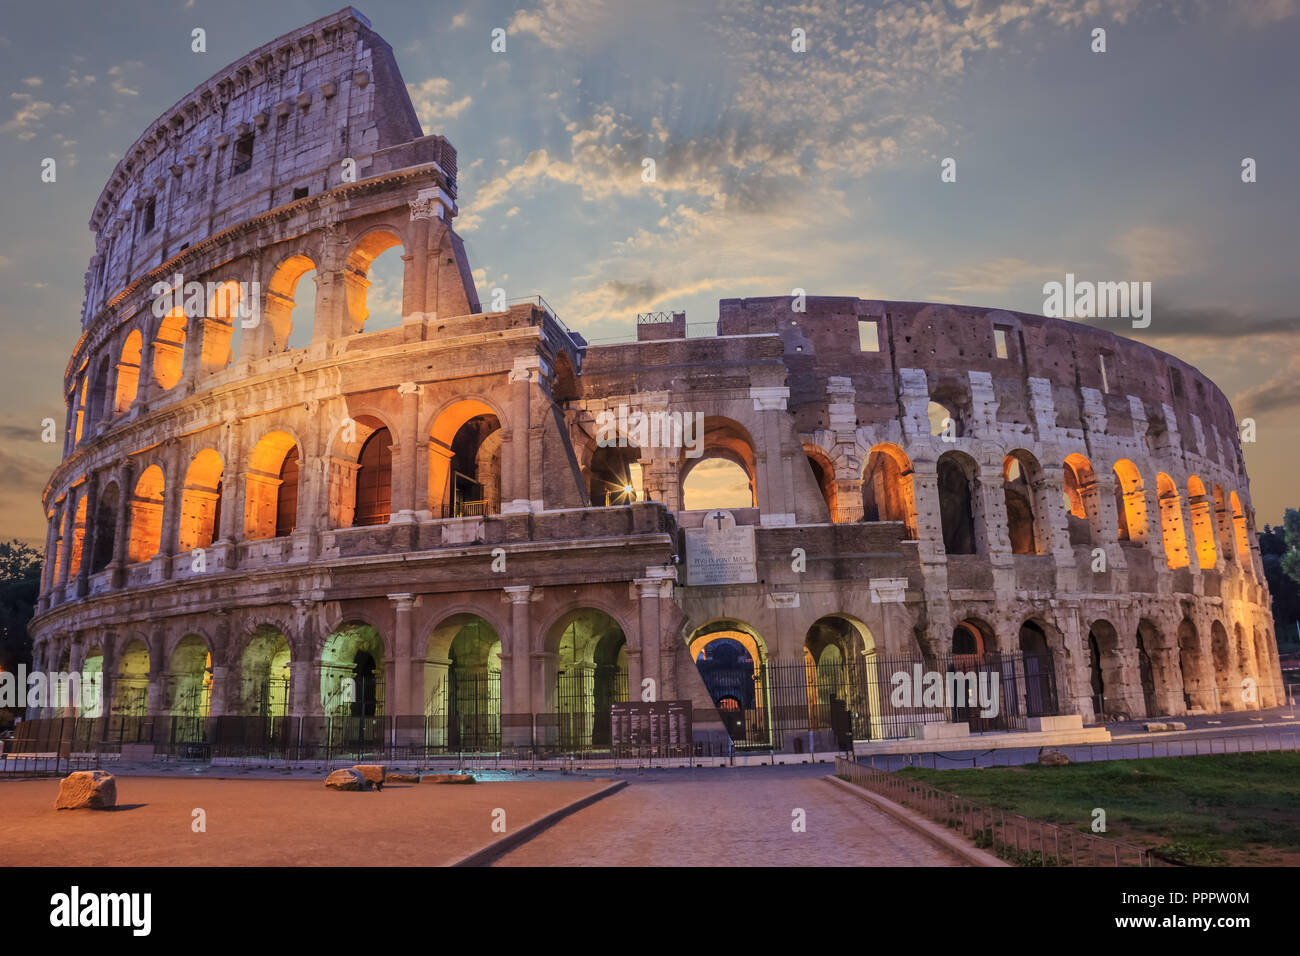 Roman Coliseum enlighted in the evening under the clouds - Stock Image